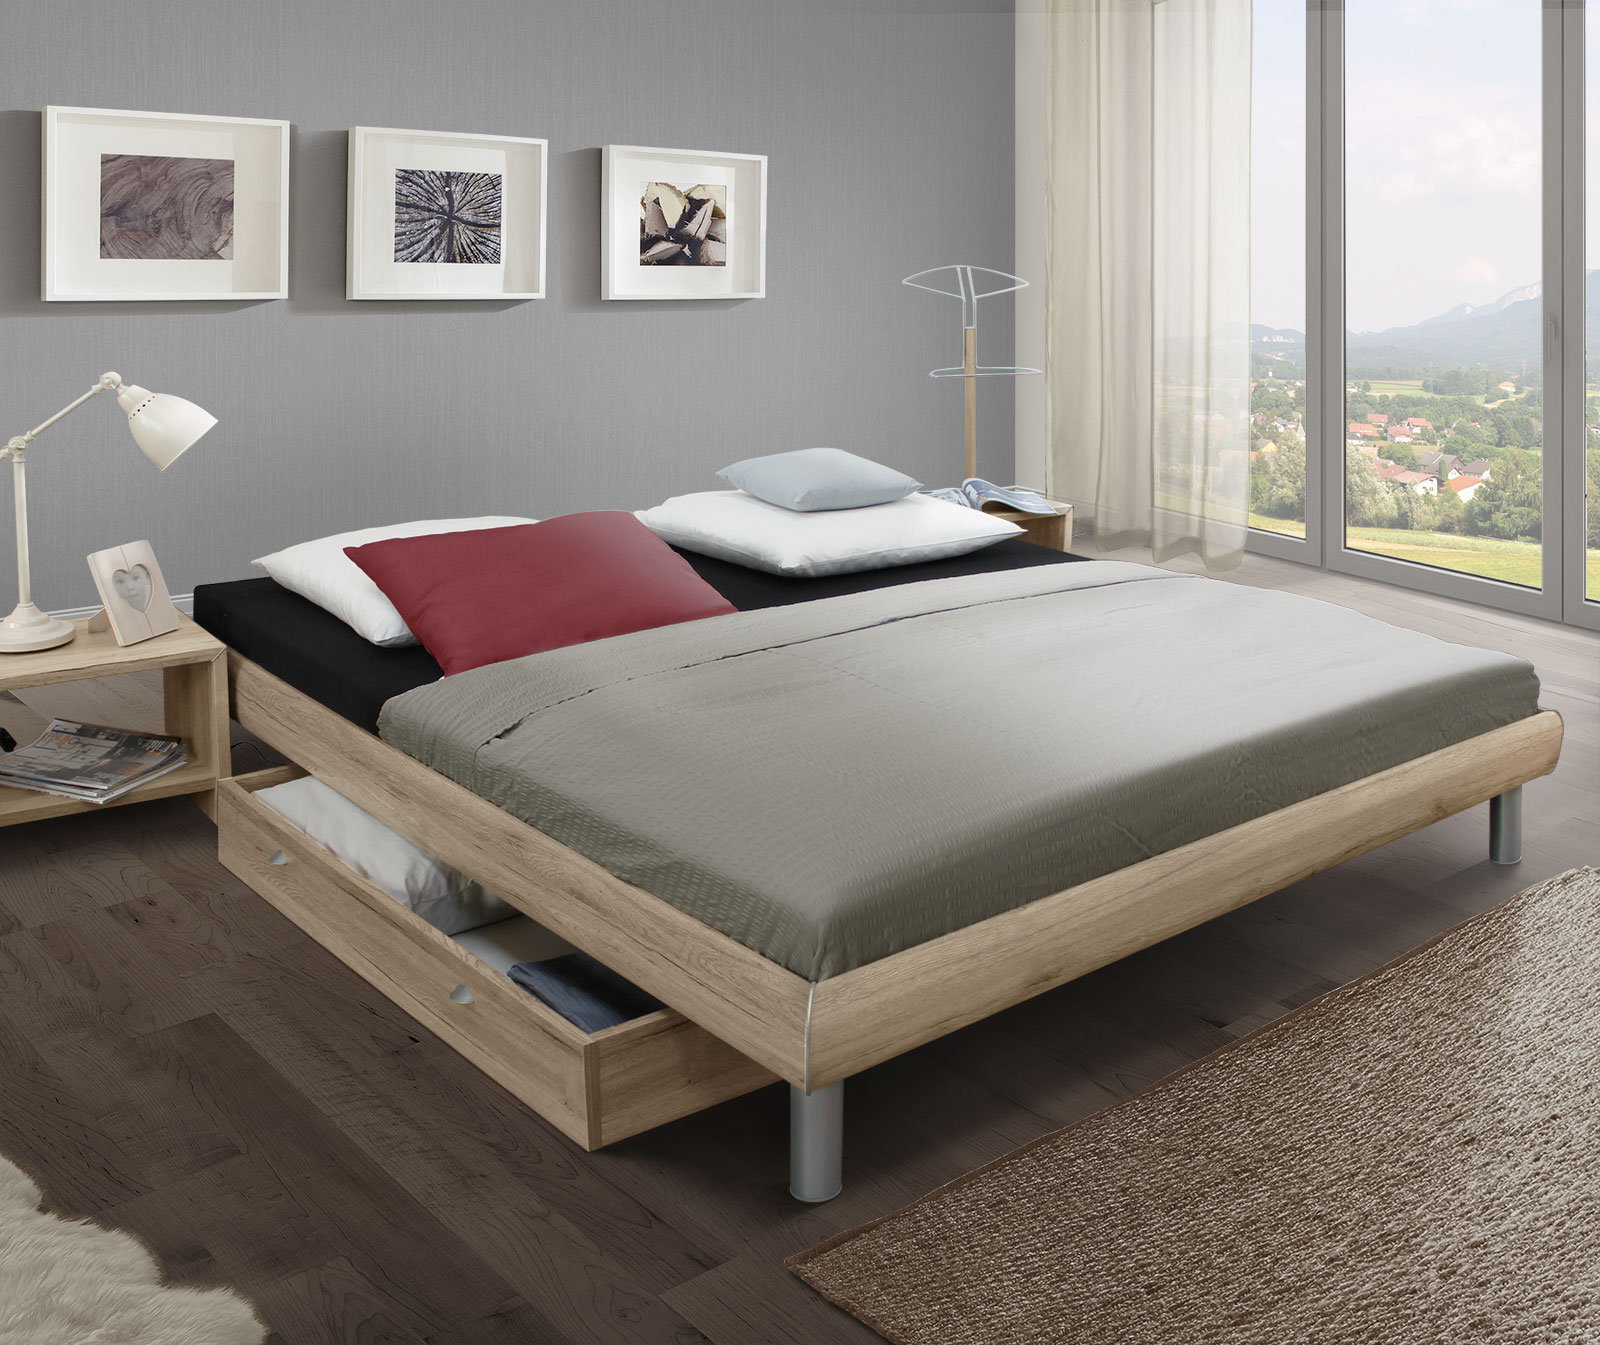 betten ohne kopfteil boxspring betten ohne kopfteil betten house und dekor betten ohne. Black Bedroom Furniture Sets. Home Design Ideas